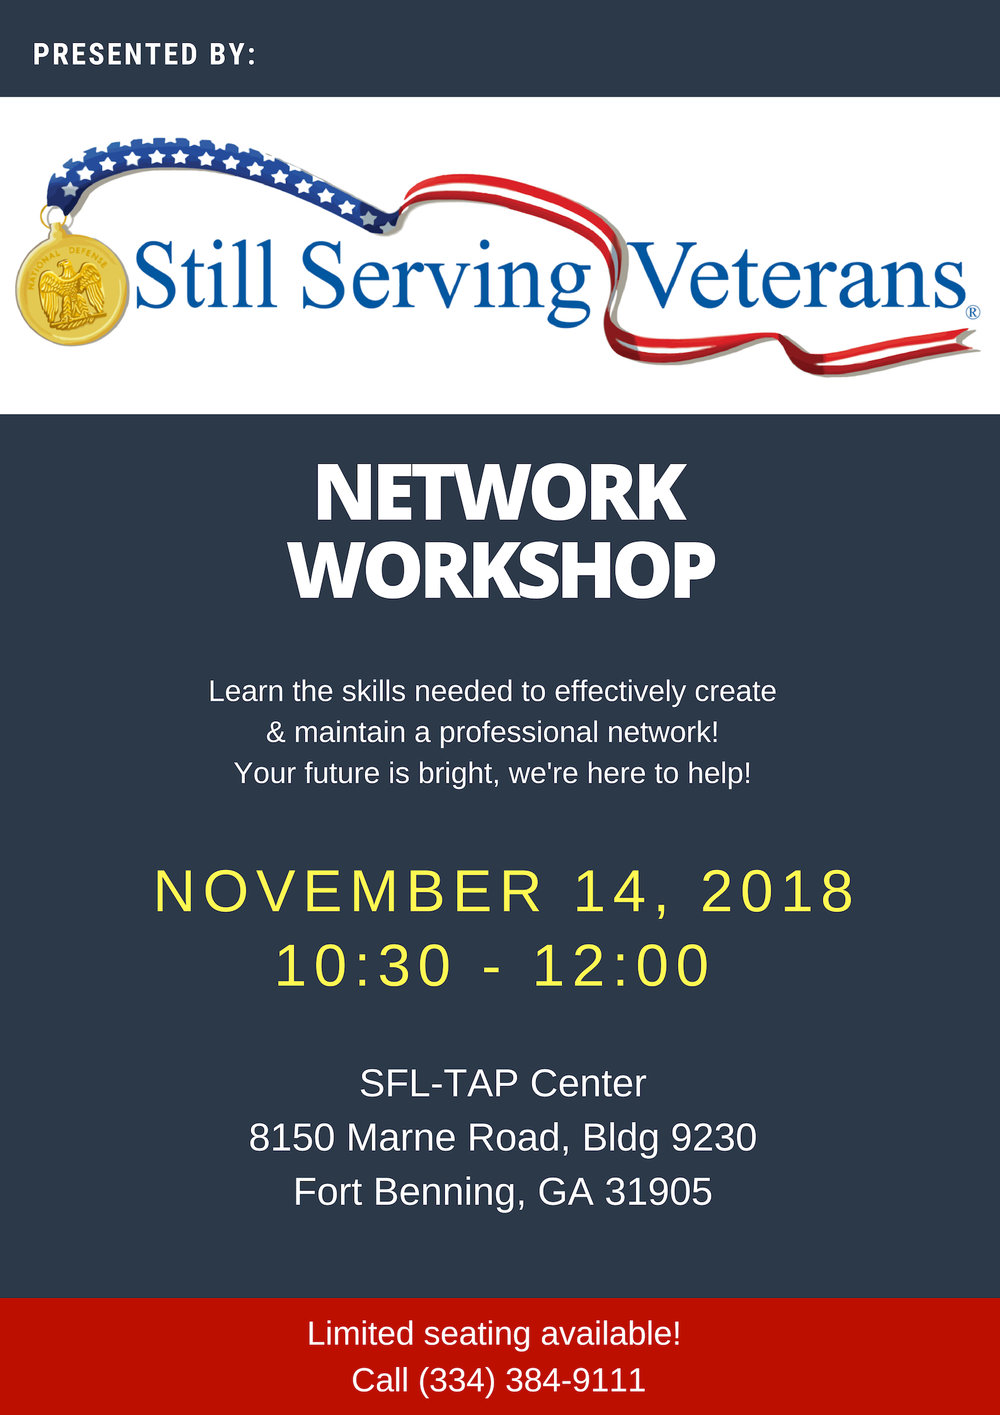 SSV Networking Workshop Flyer